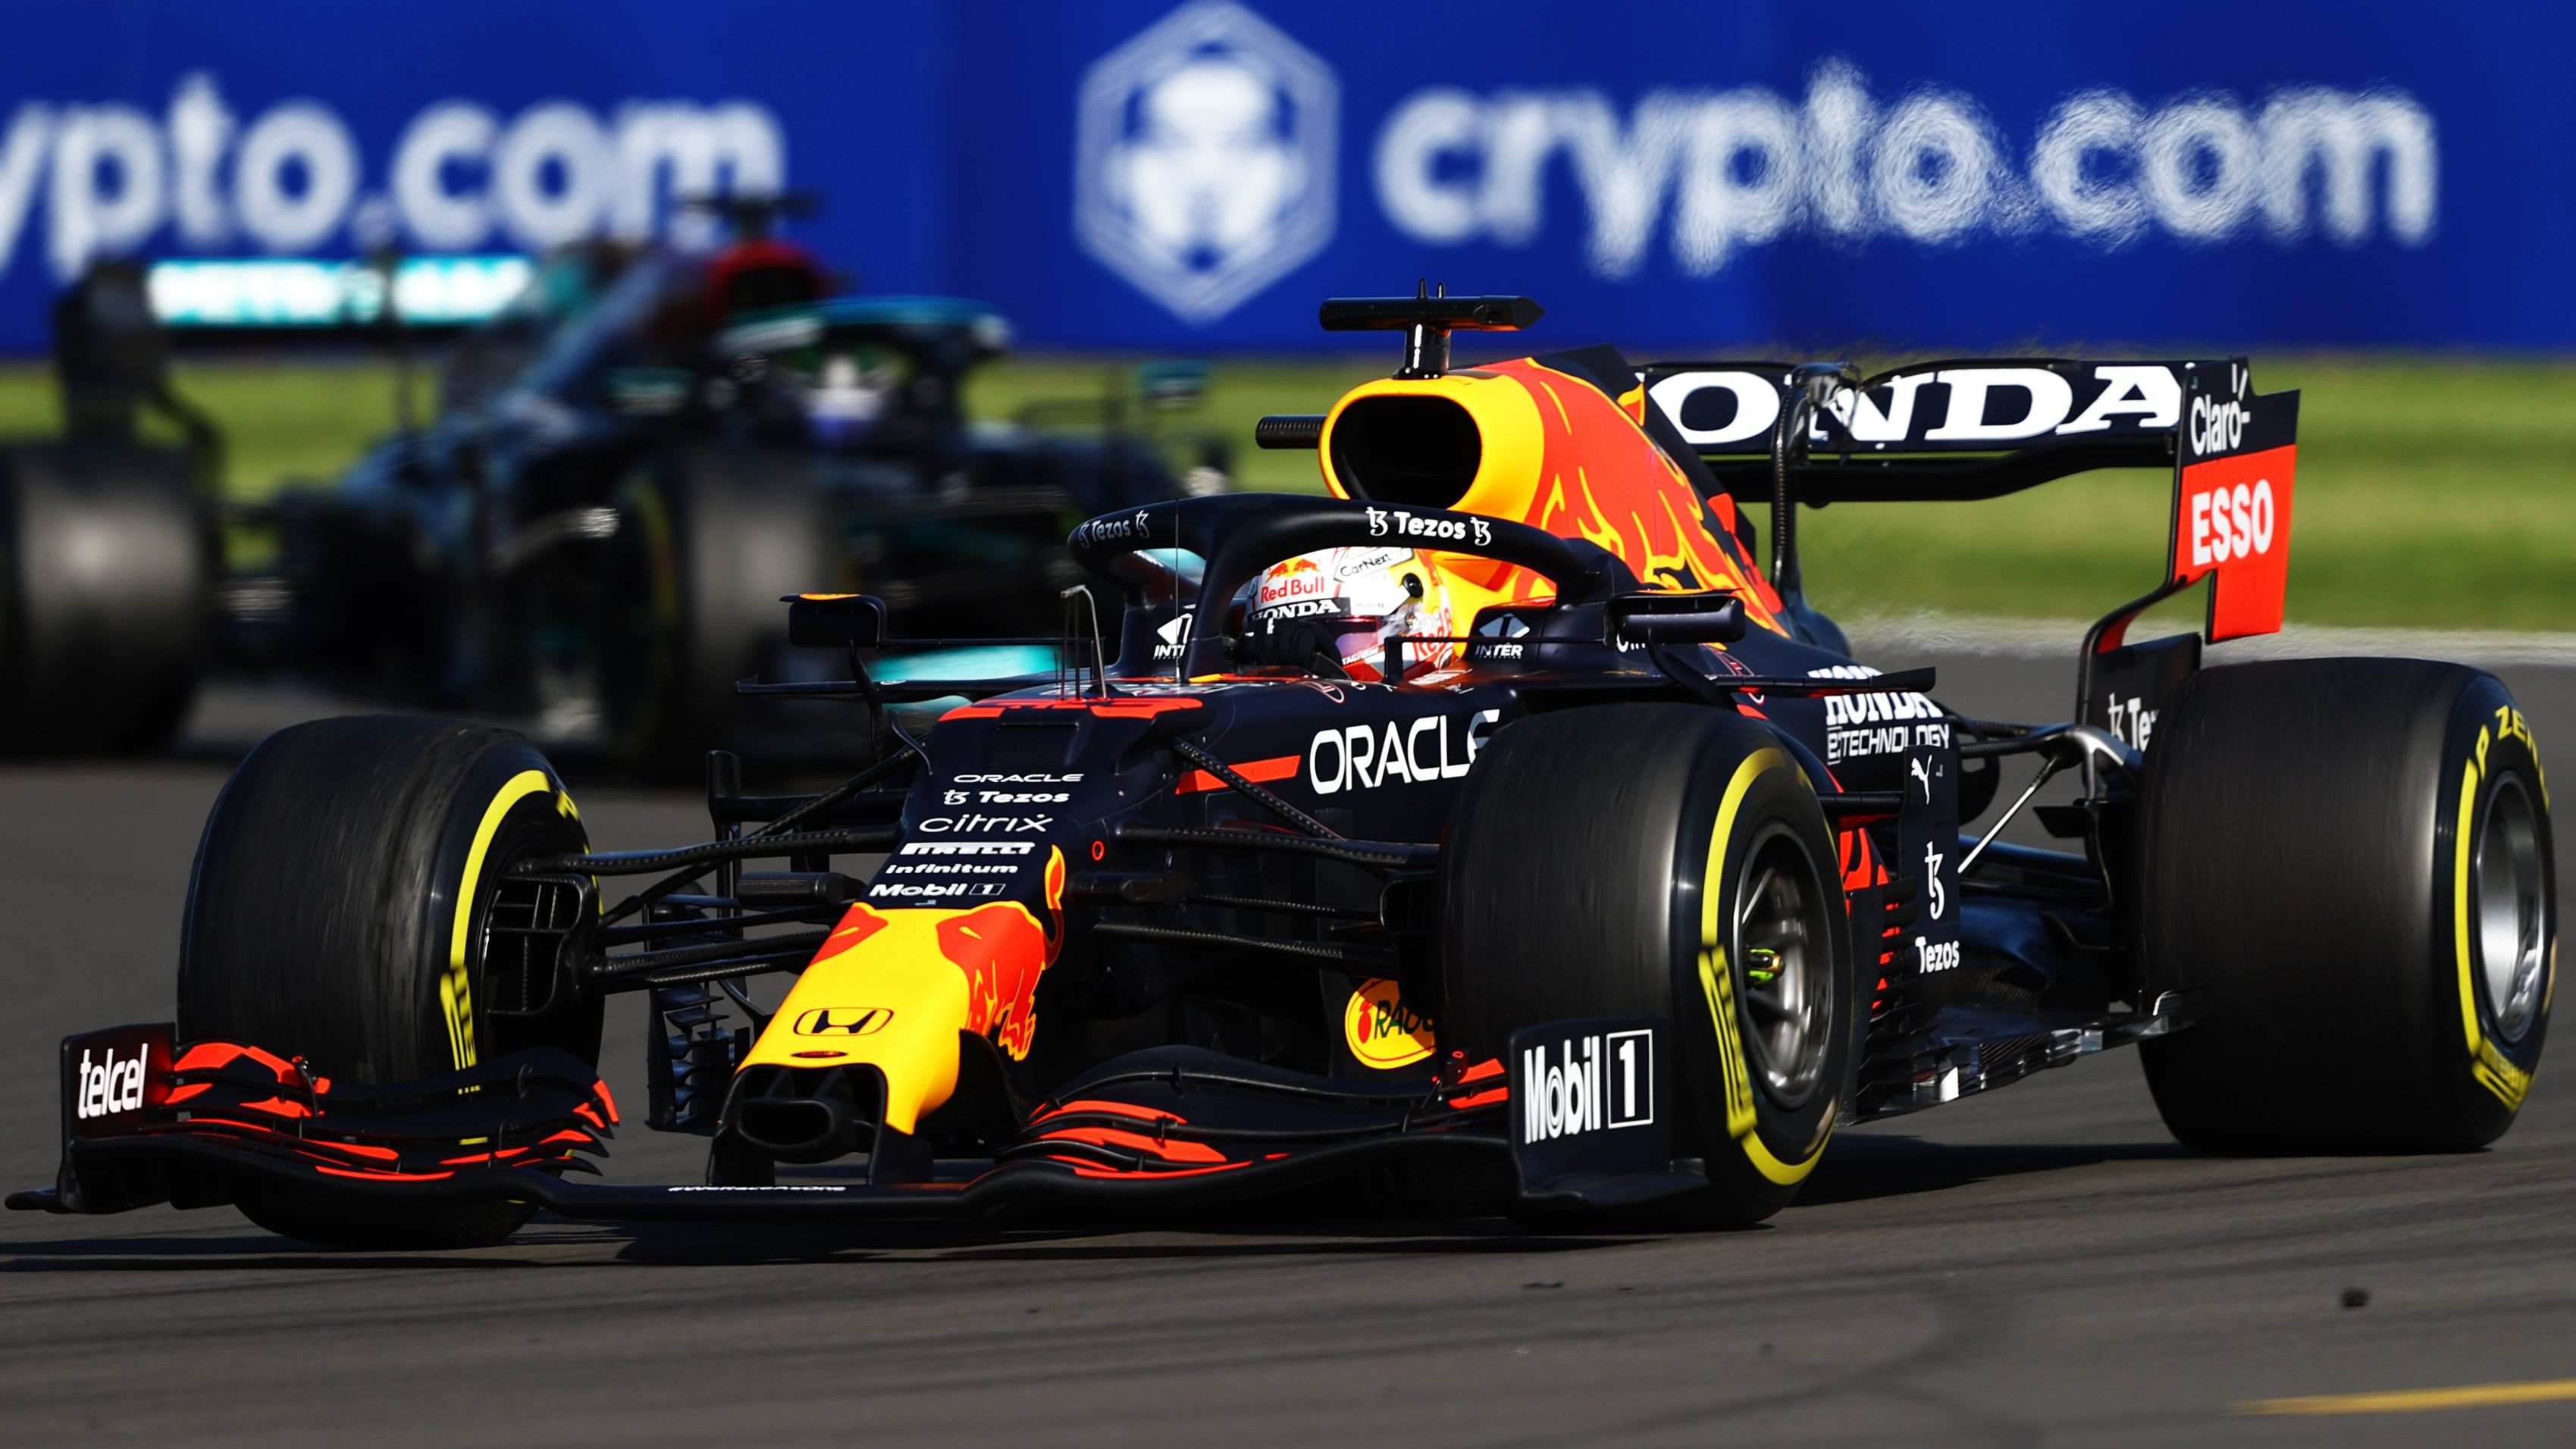 Verstappen claims historic F1 qualifying victory